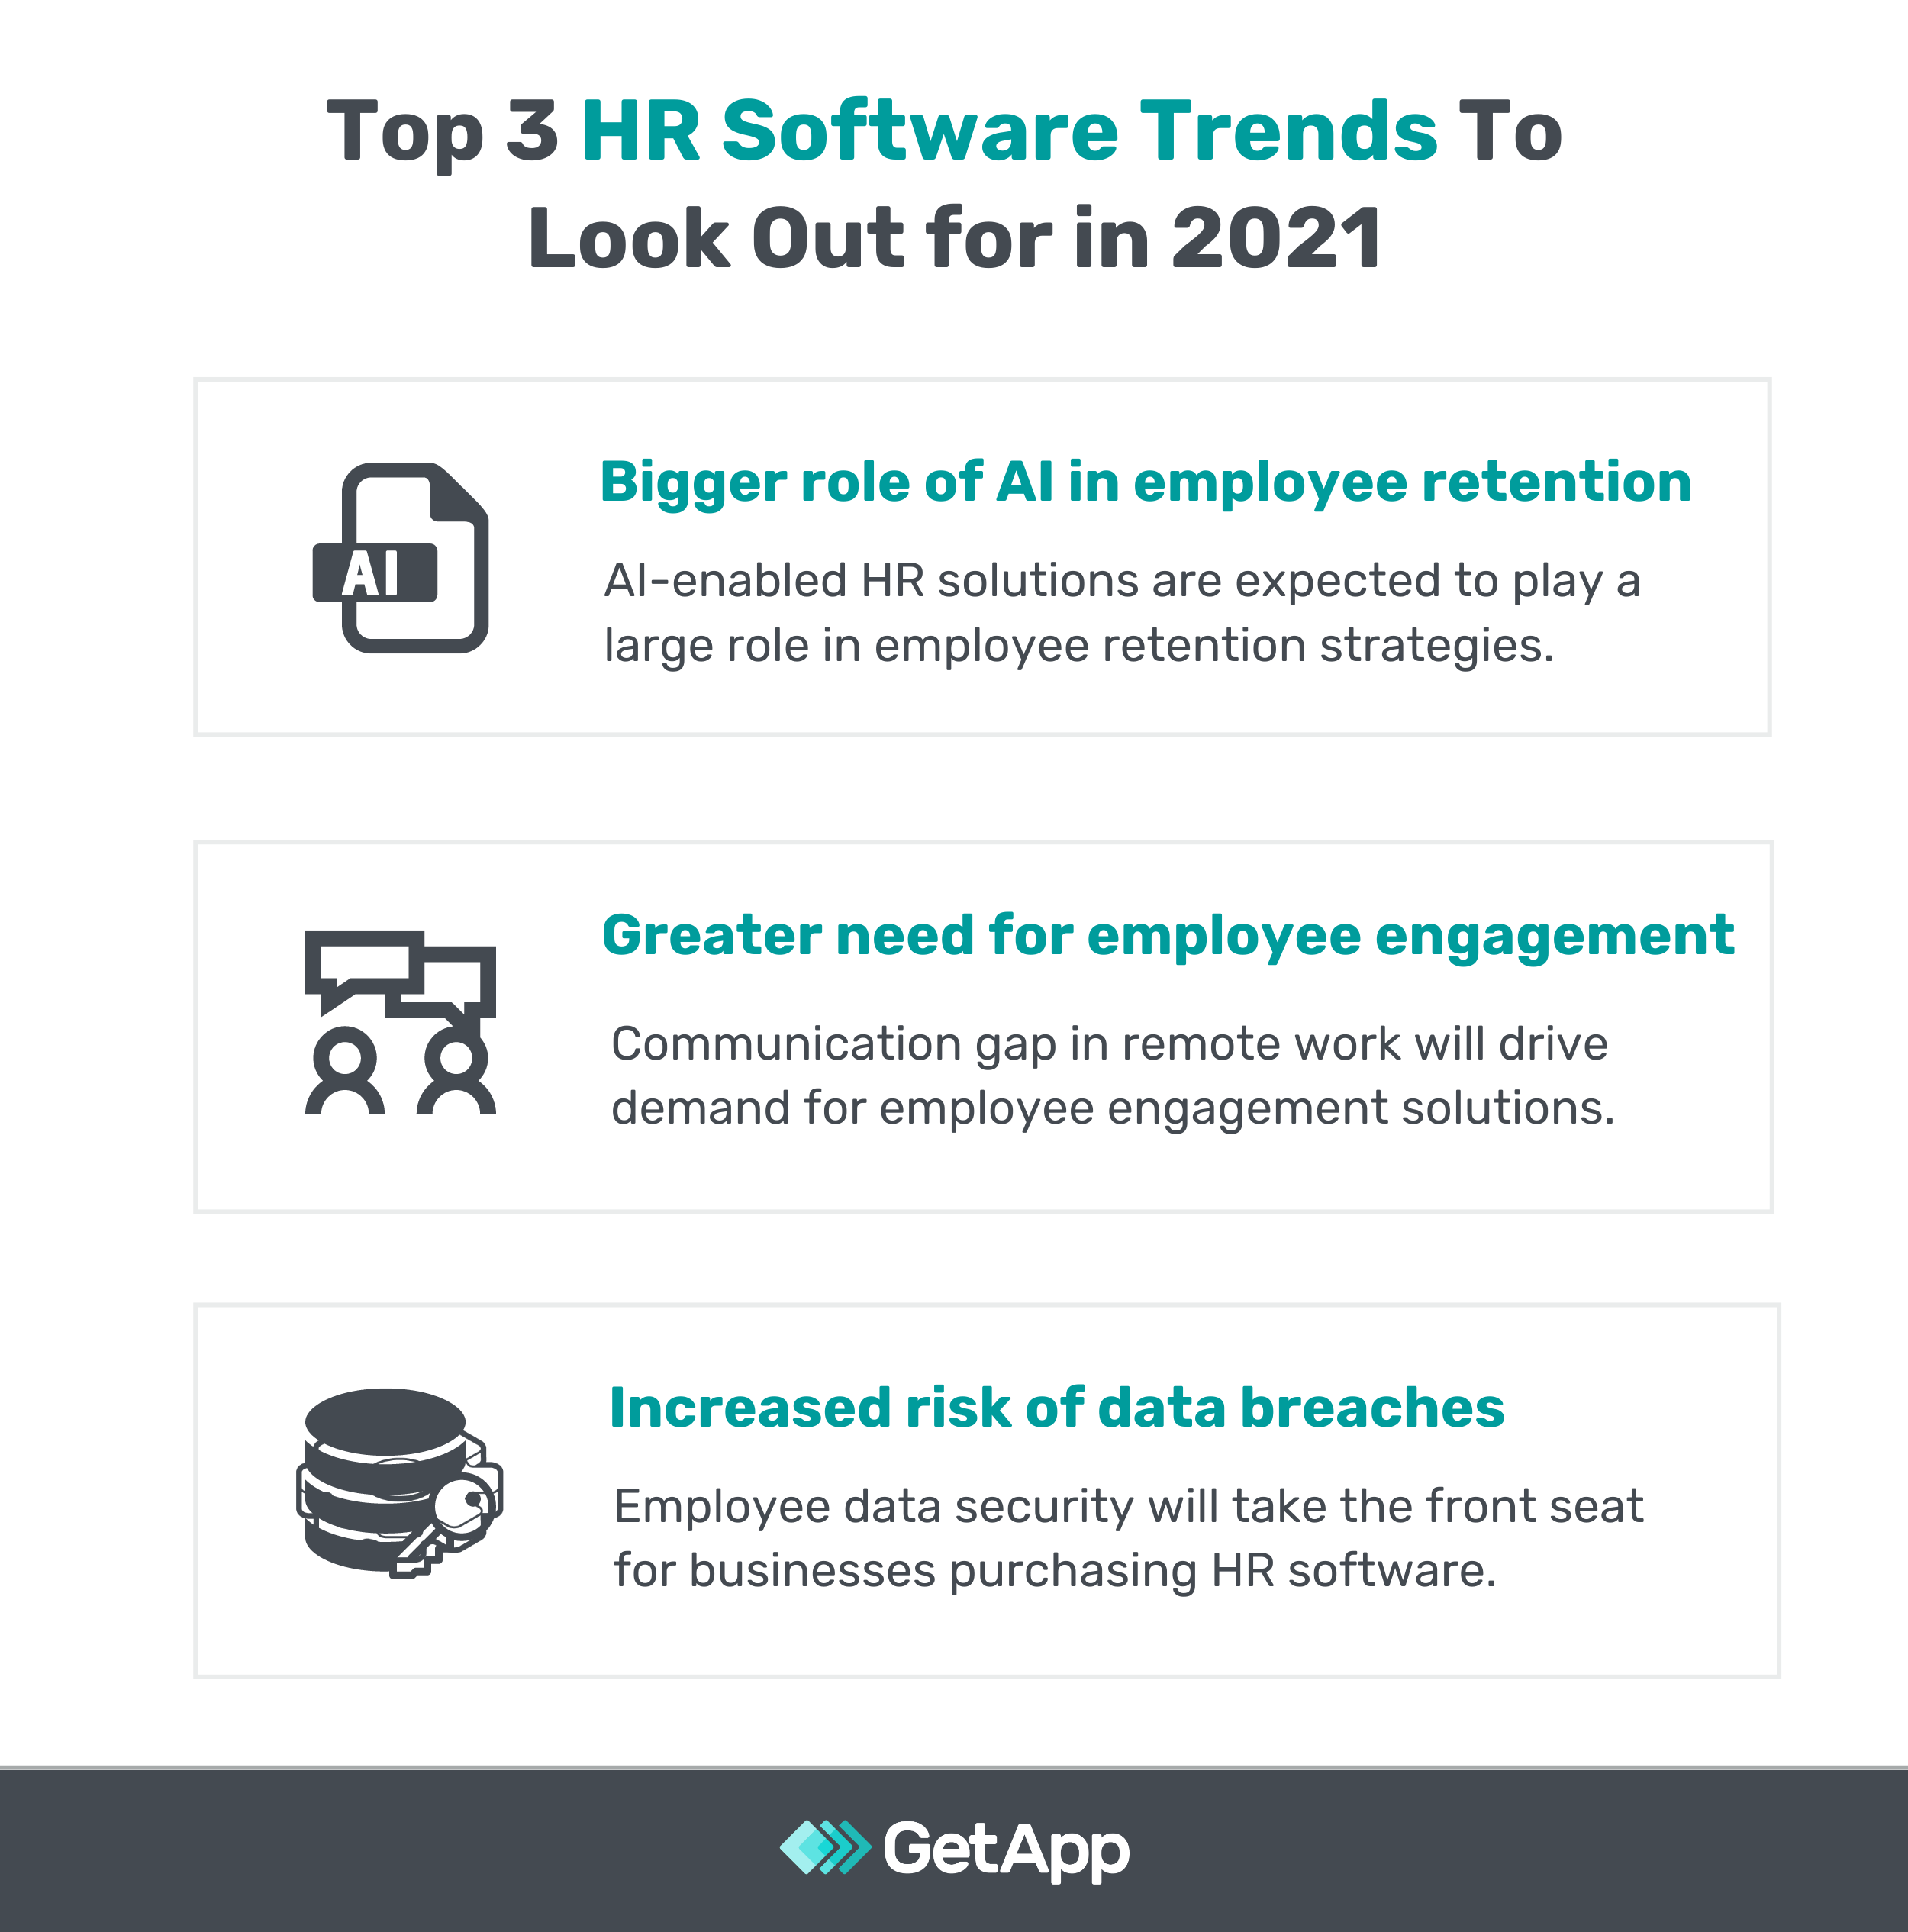 Top 3 HR Software Trends To Look Out for in 2021